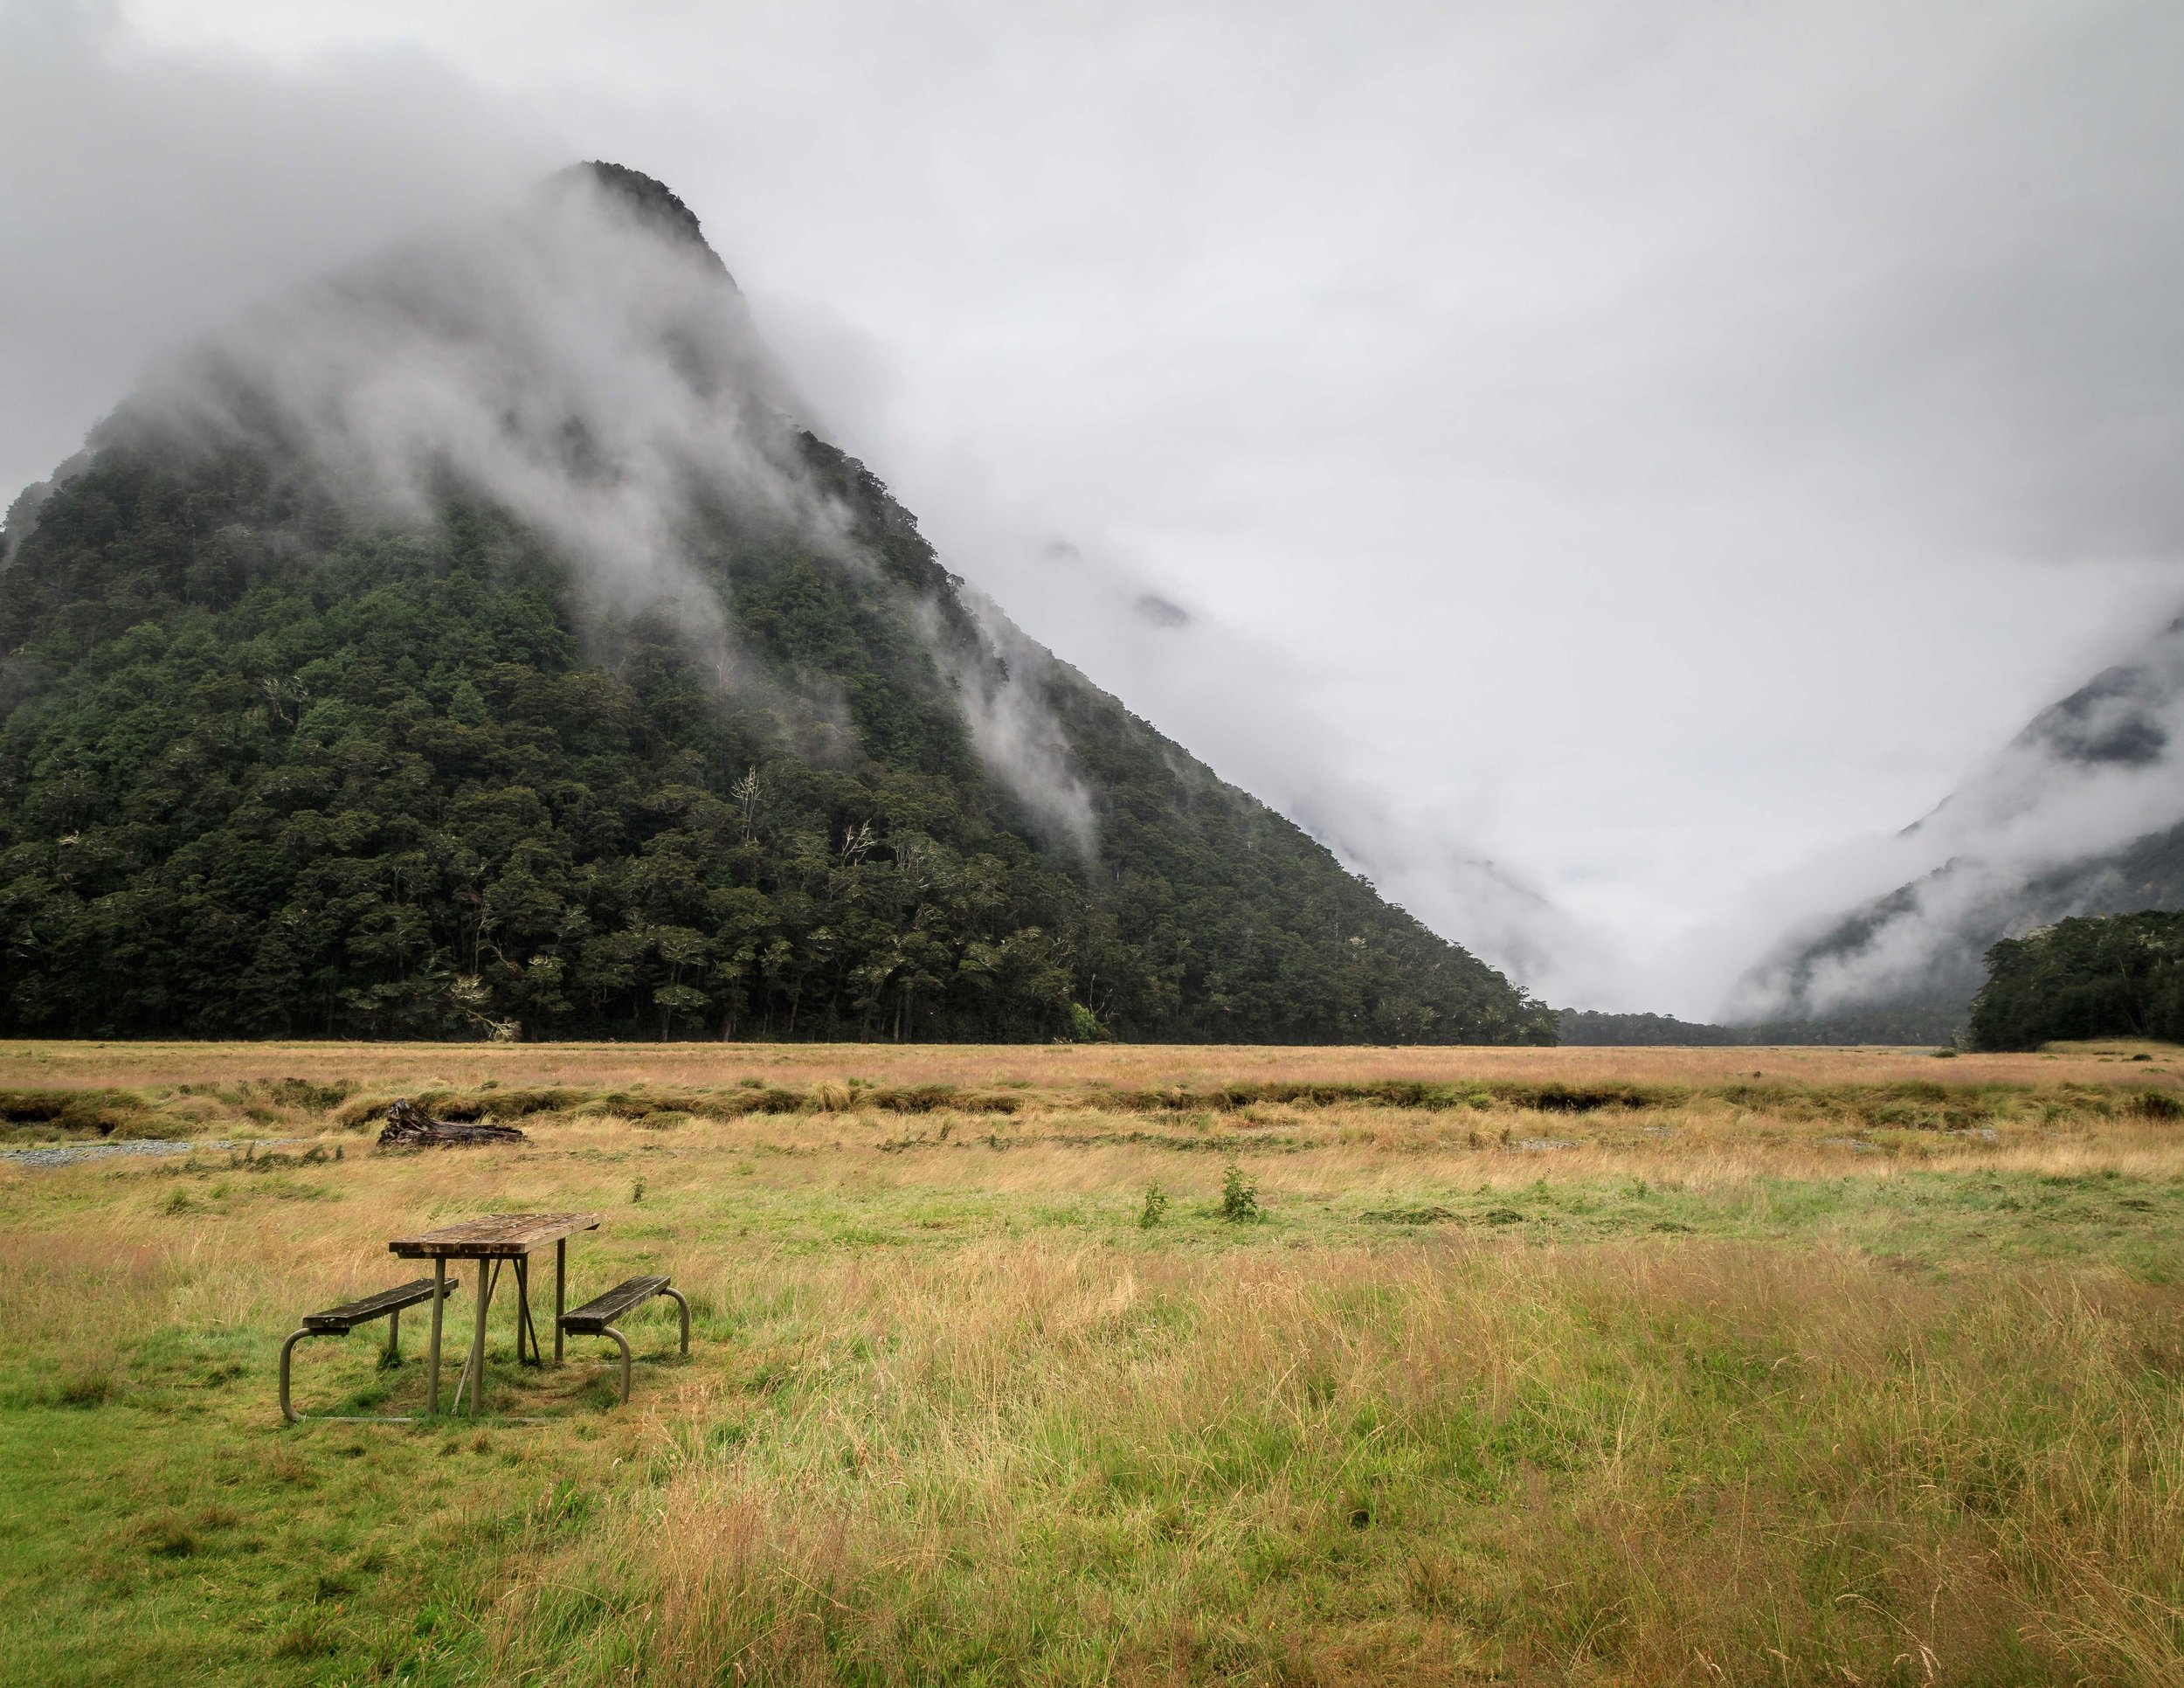 Routeburn Flats: Home of the greatest picnic bench in the world